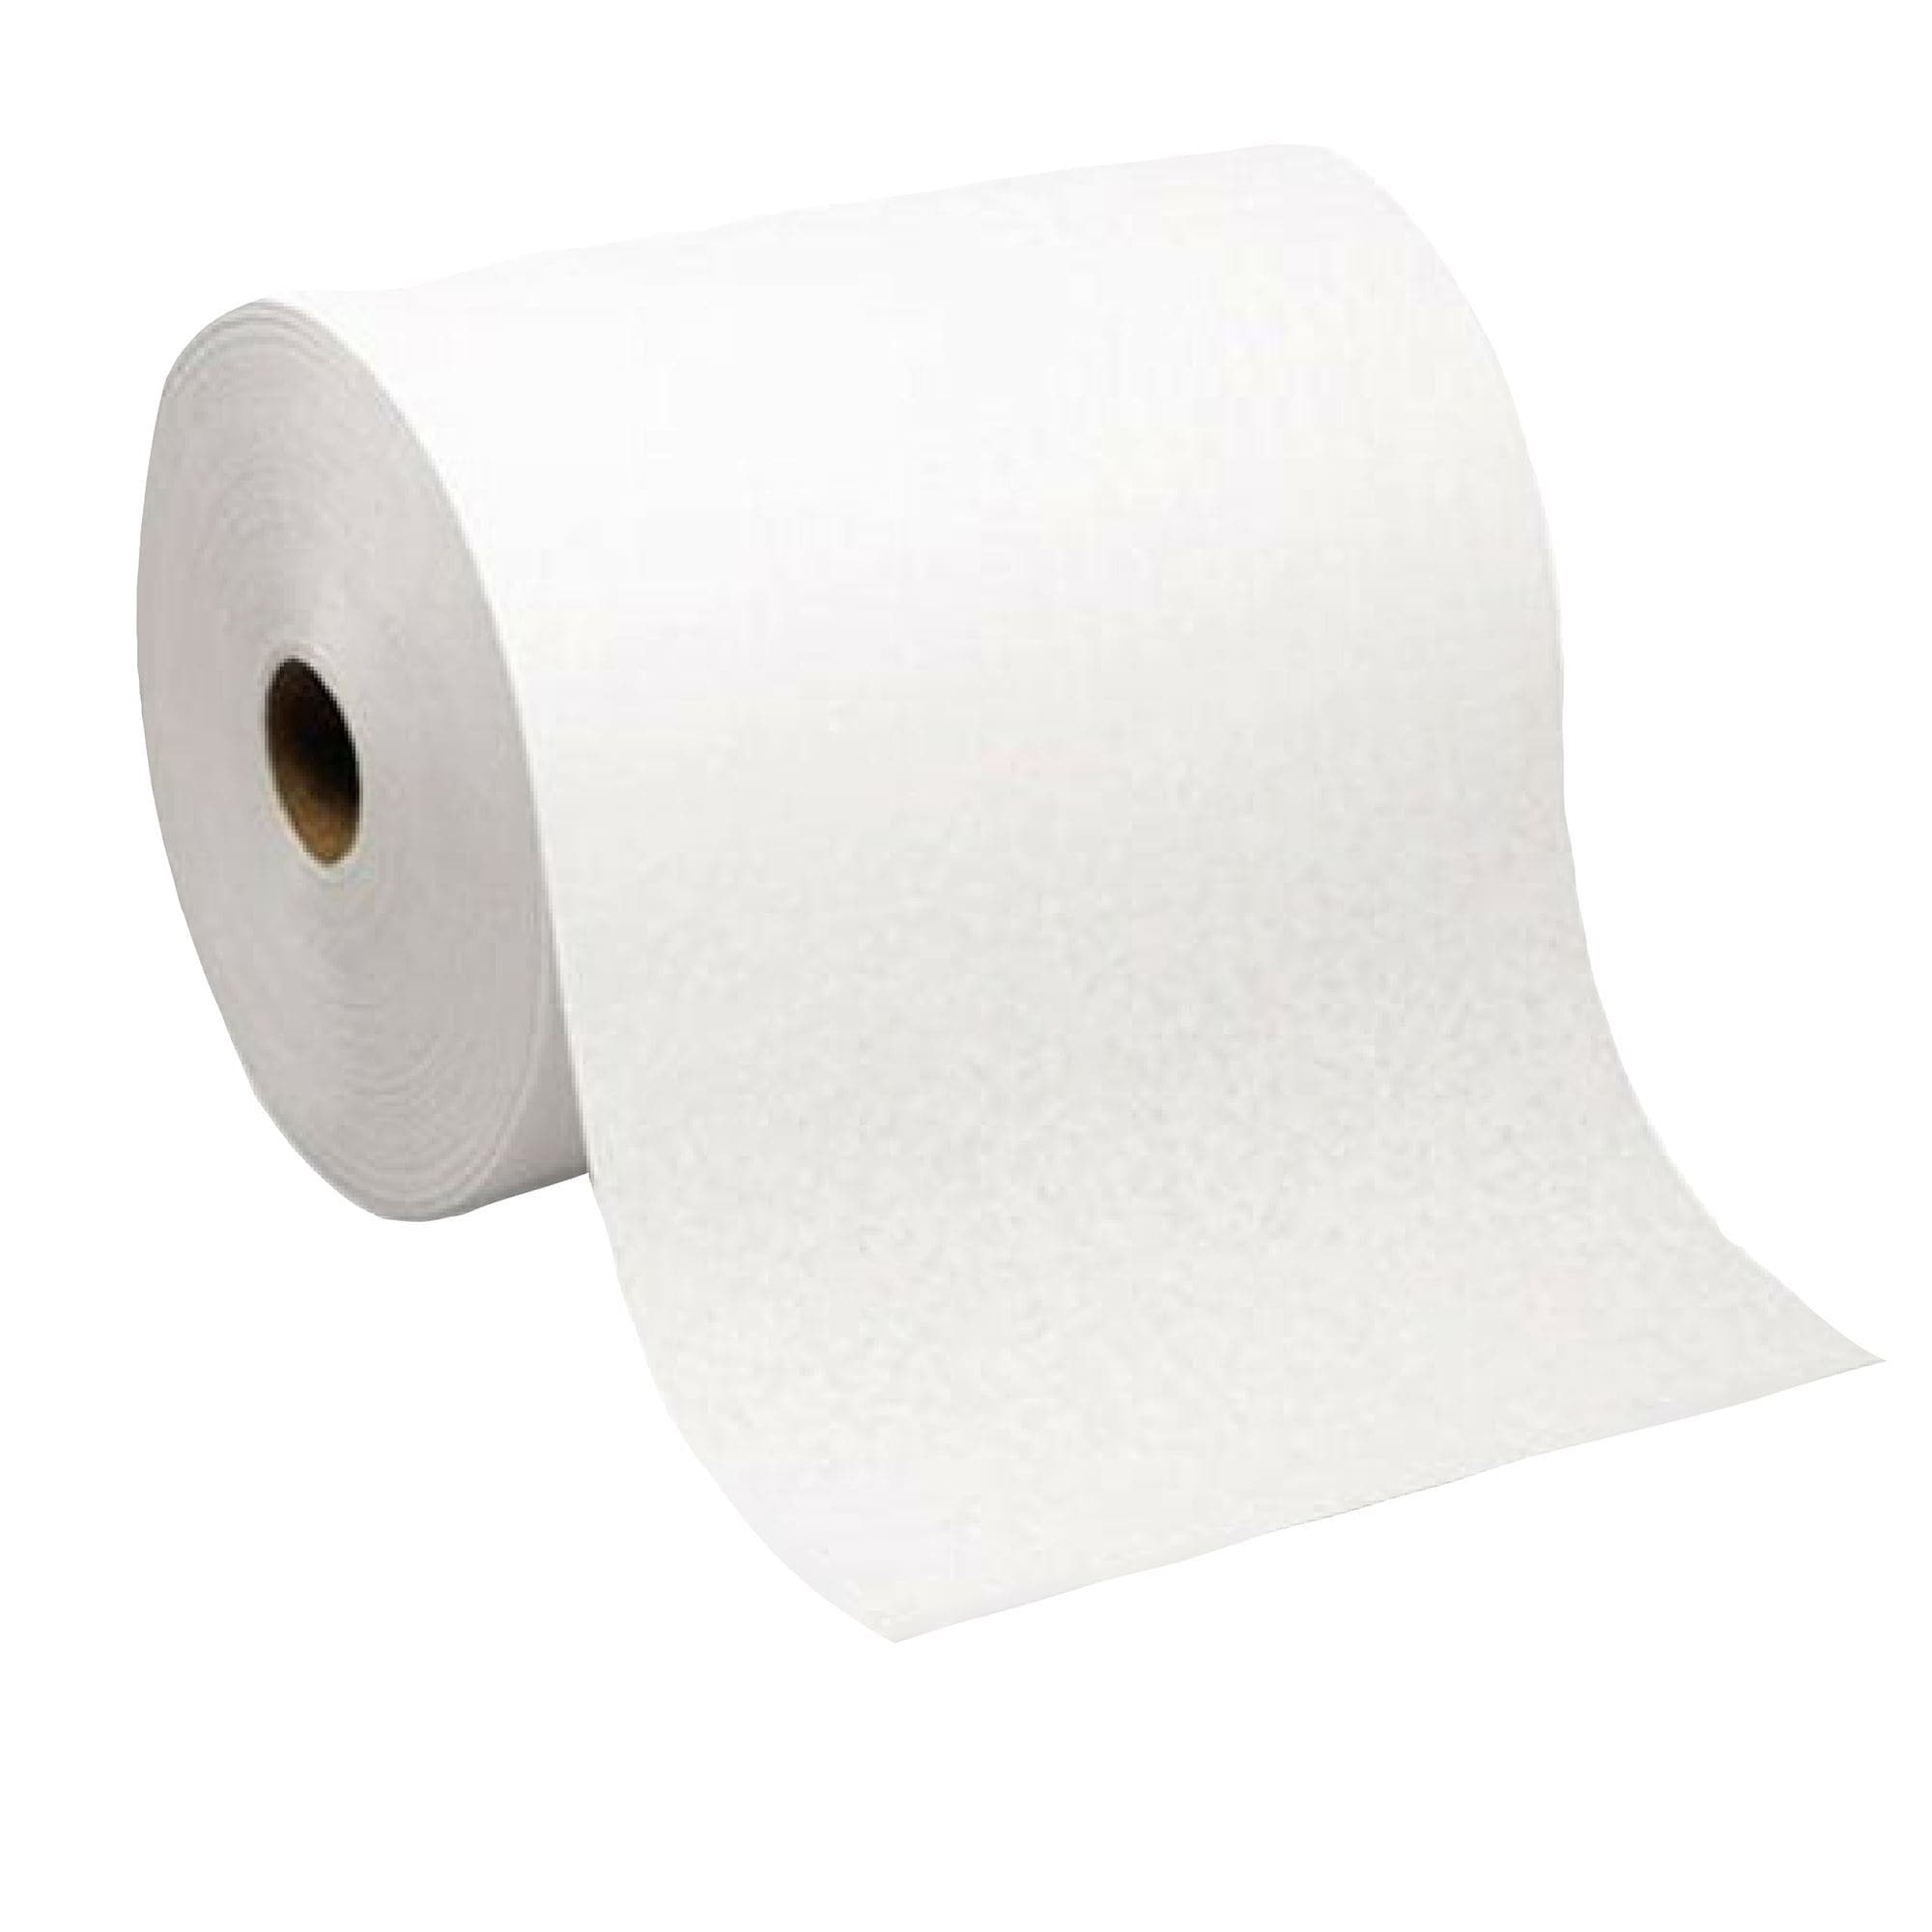 Facial Cleanser Towel Roll (White) - SH Salons